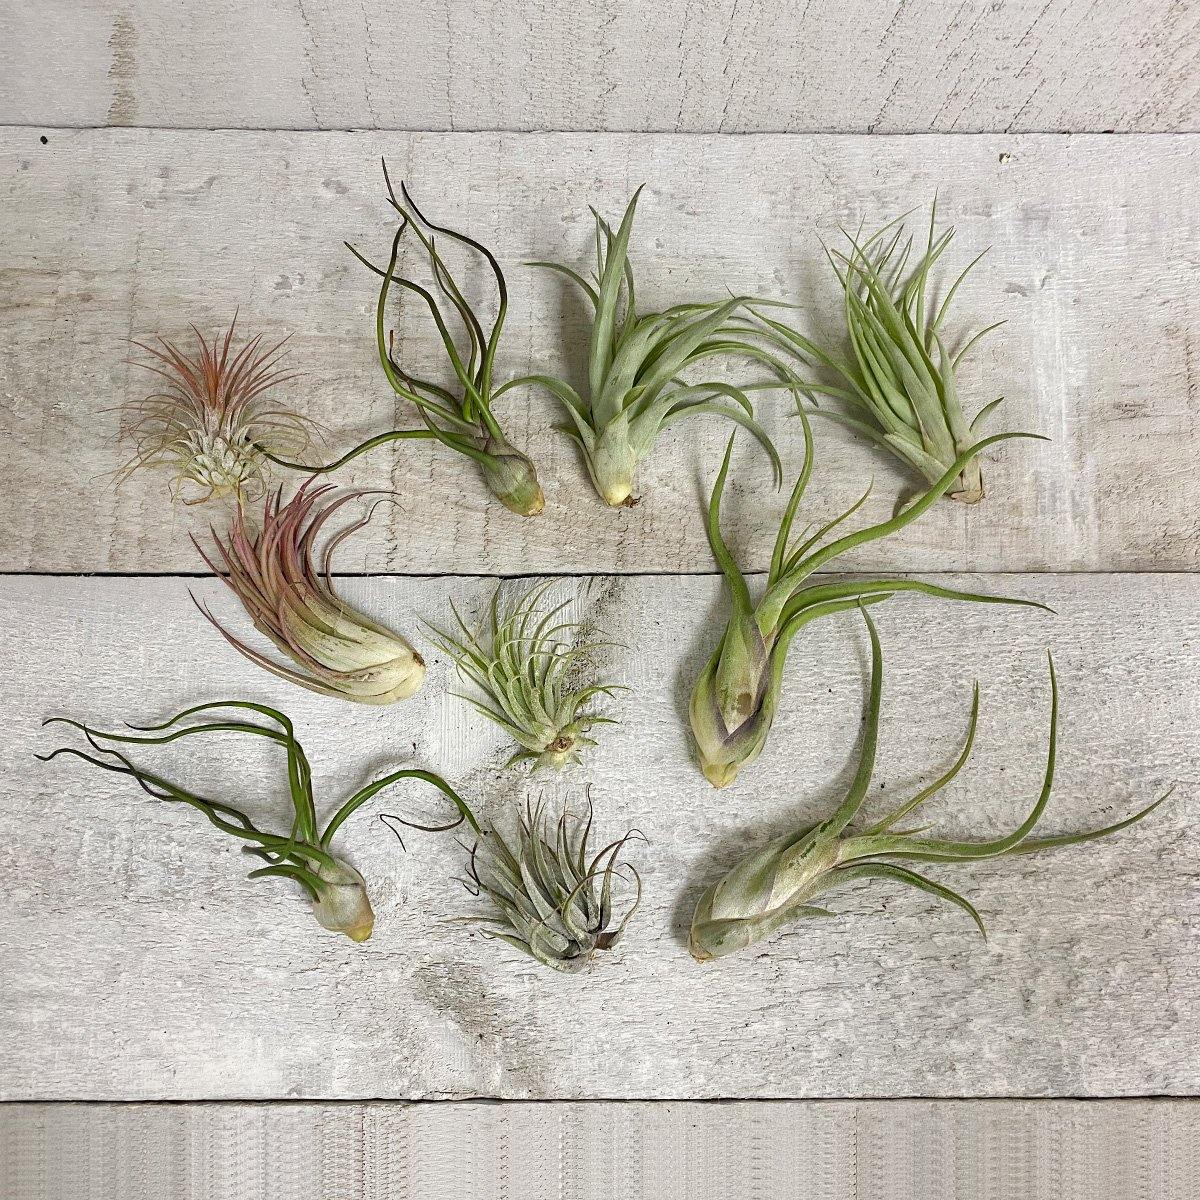 Deluxe Air Plant Bundle (Assorted) - Geoponics Inc